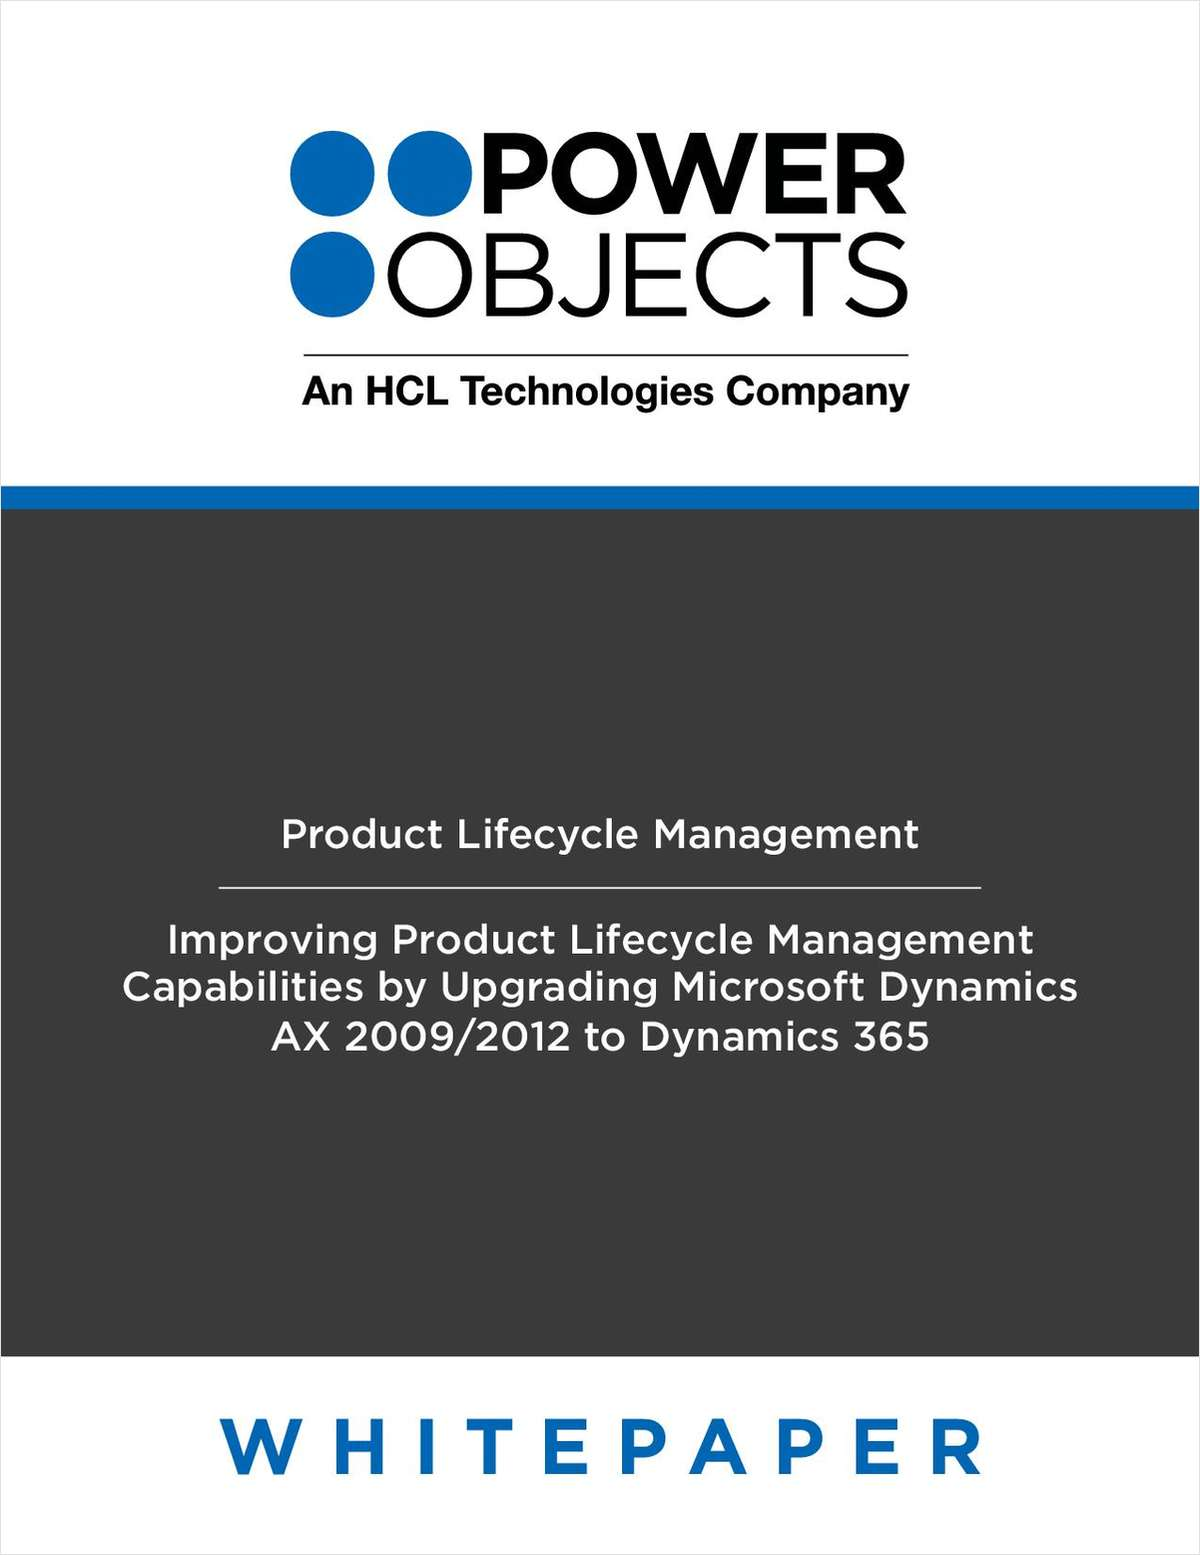 Improving Product Lifecycle Management Capabilities - Upgrading Microsoft Dynamics AX 2009/2012 to Dynamics 365